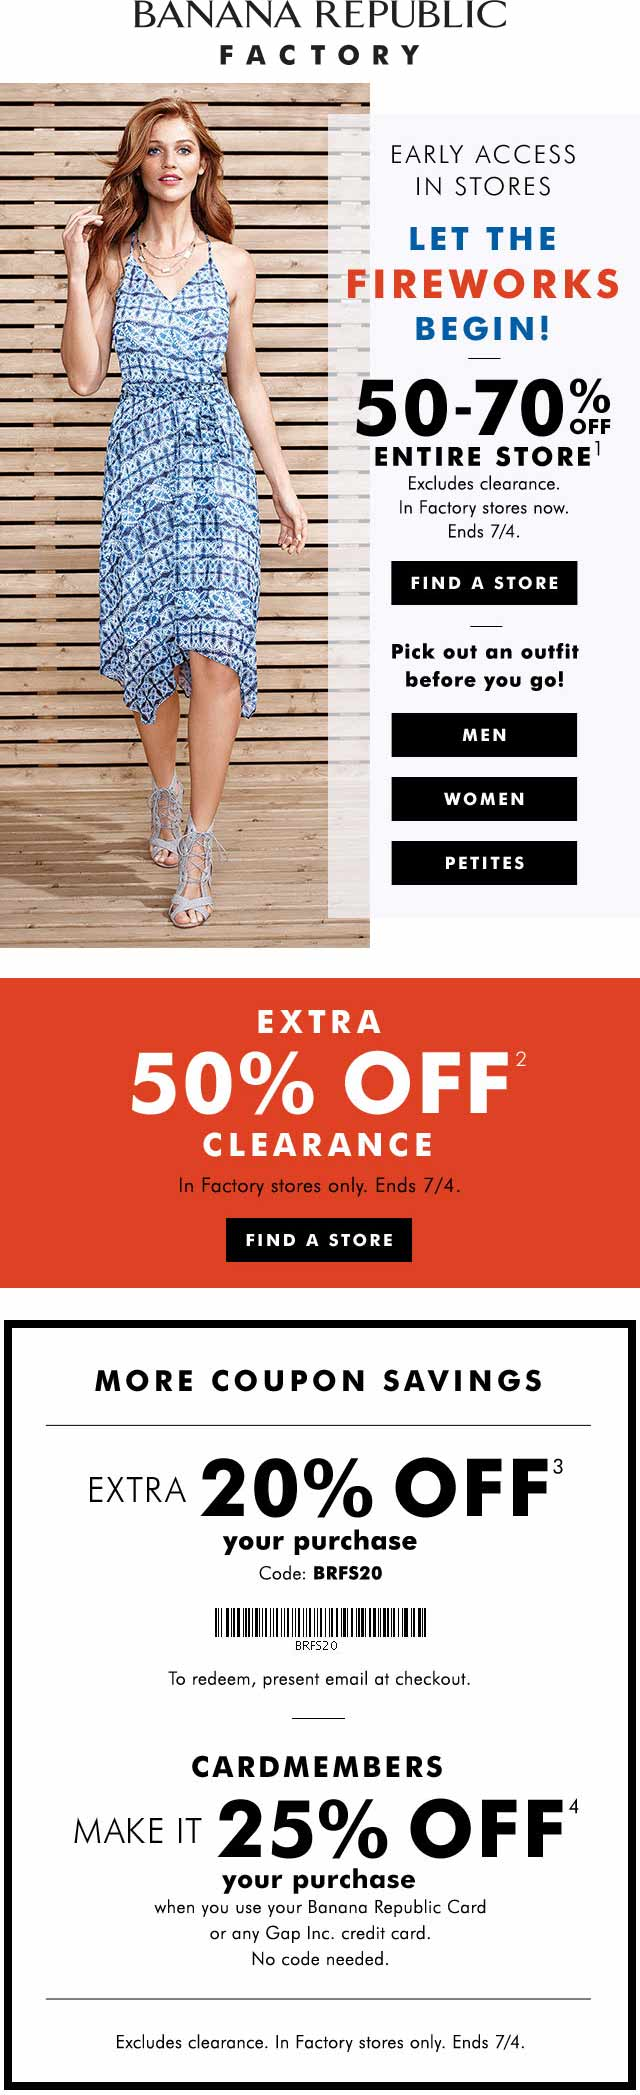 Banana Republic Factory Coupon May 2017 50-70% off everything & more at Banana Republic Factory